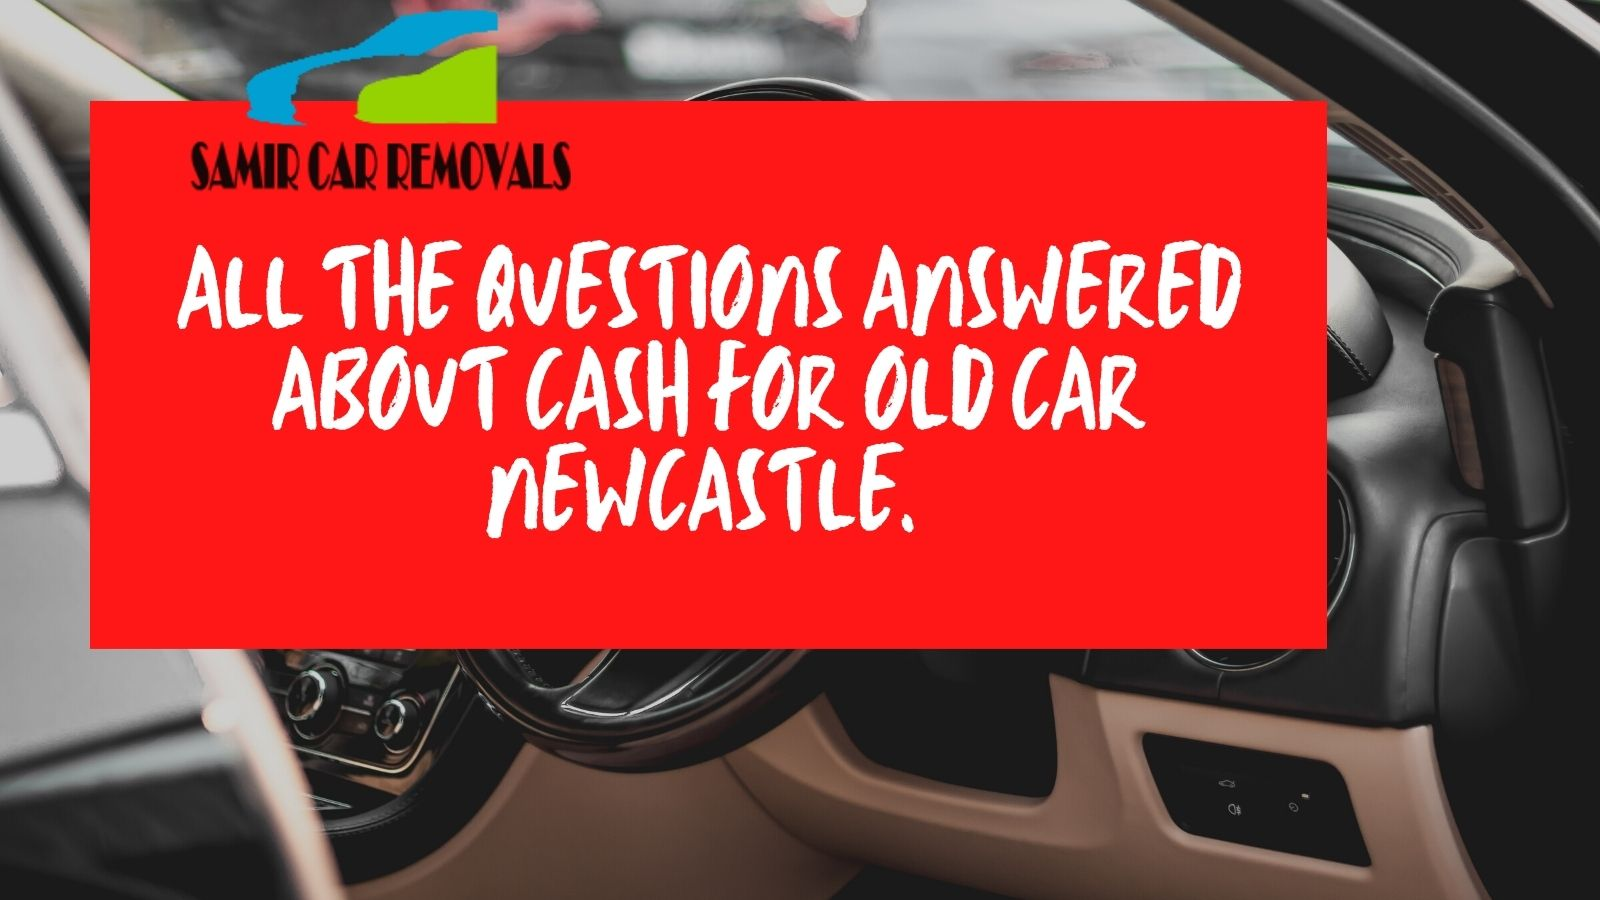 car removal service like Samir car removals will help you in getting rid of it and also give you cash for unwanted cars